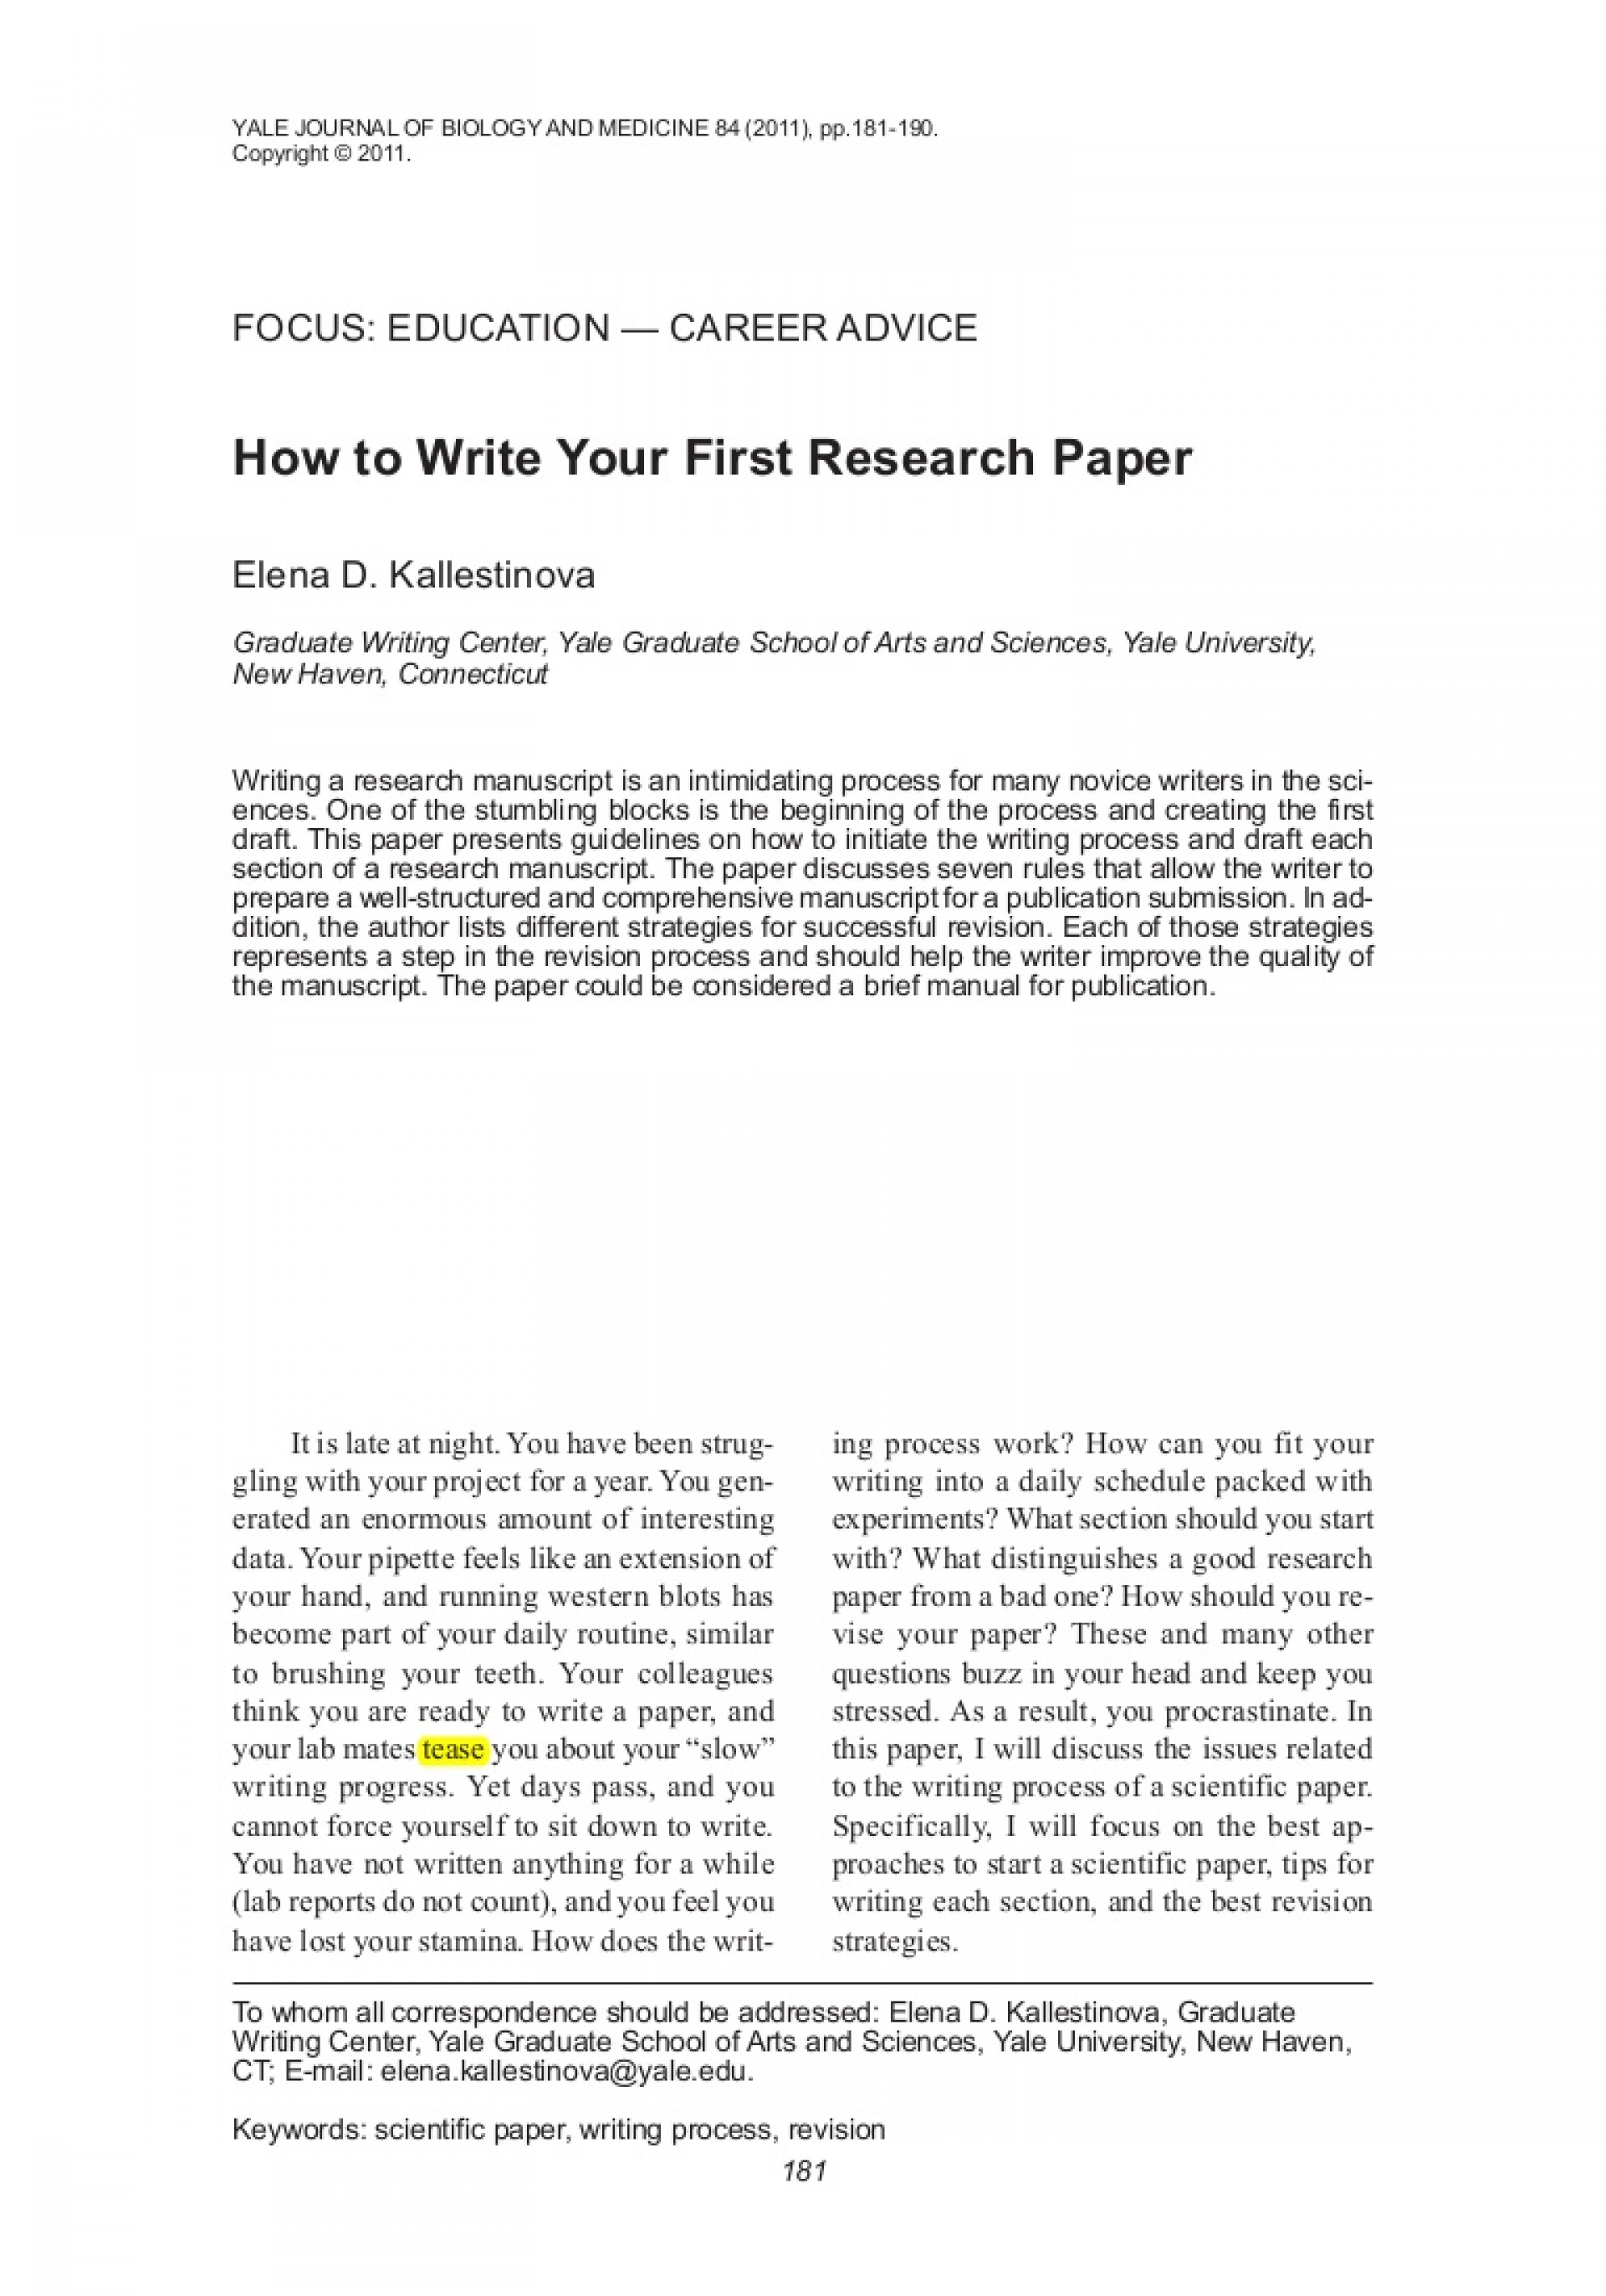 013 How To Write Research Papers Paper Howtowriteyourfirstresearchpaper Lva1 App6891 Thumbnail Best A History Introduction For International Conference In Computer Science Ppt 1920